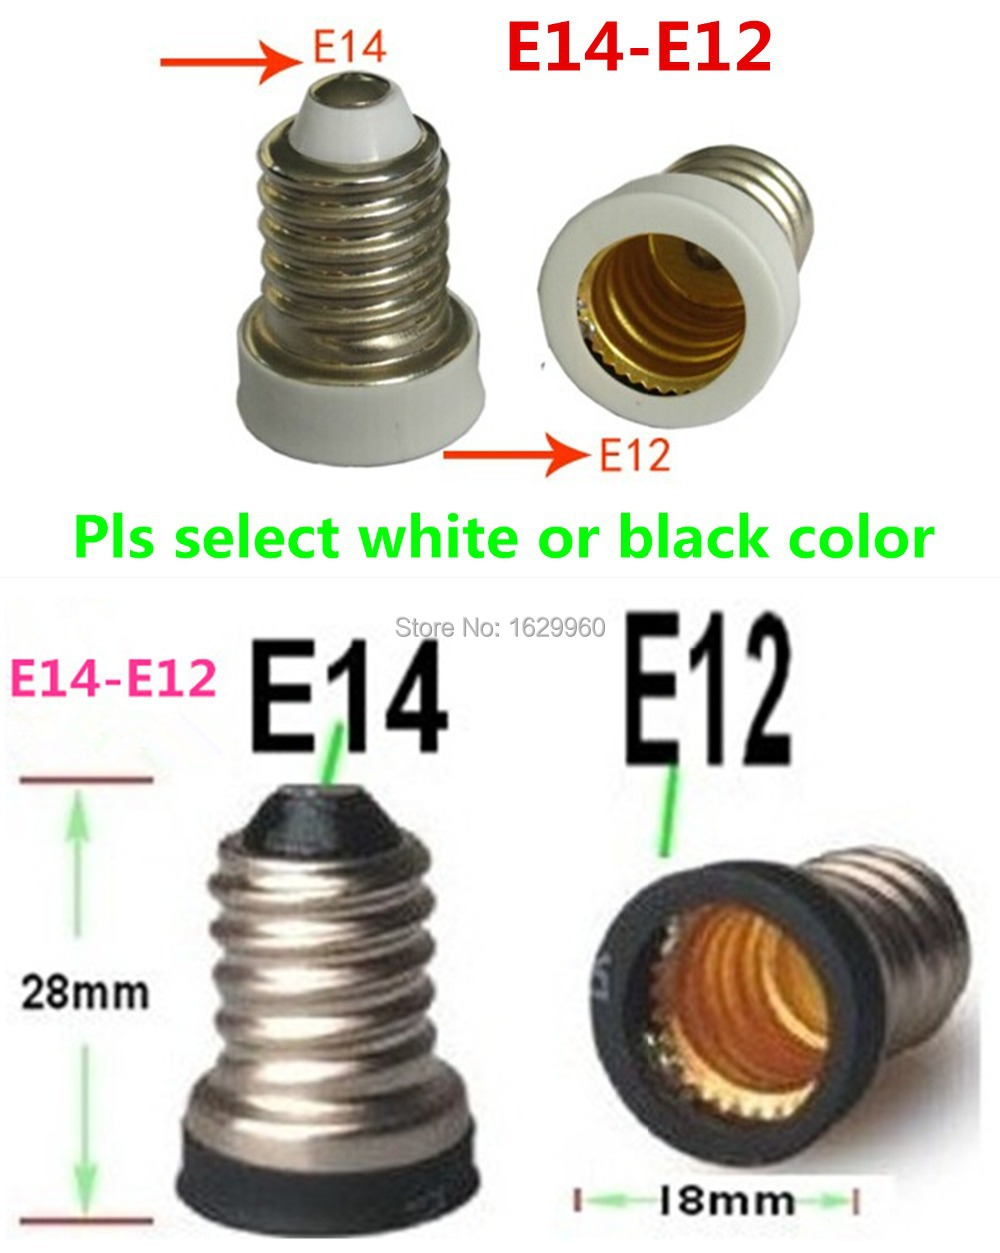 Table lamp socket - Free Ship 6pcs Lot Lamp Adapter E14 To E12 Socket Adapter E14 E12 Bulb Base Adapter Led Light Holder Converter Table Lamp Plug